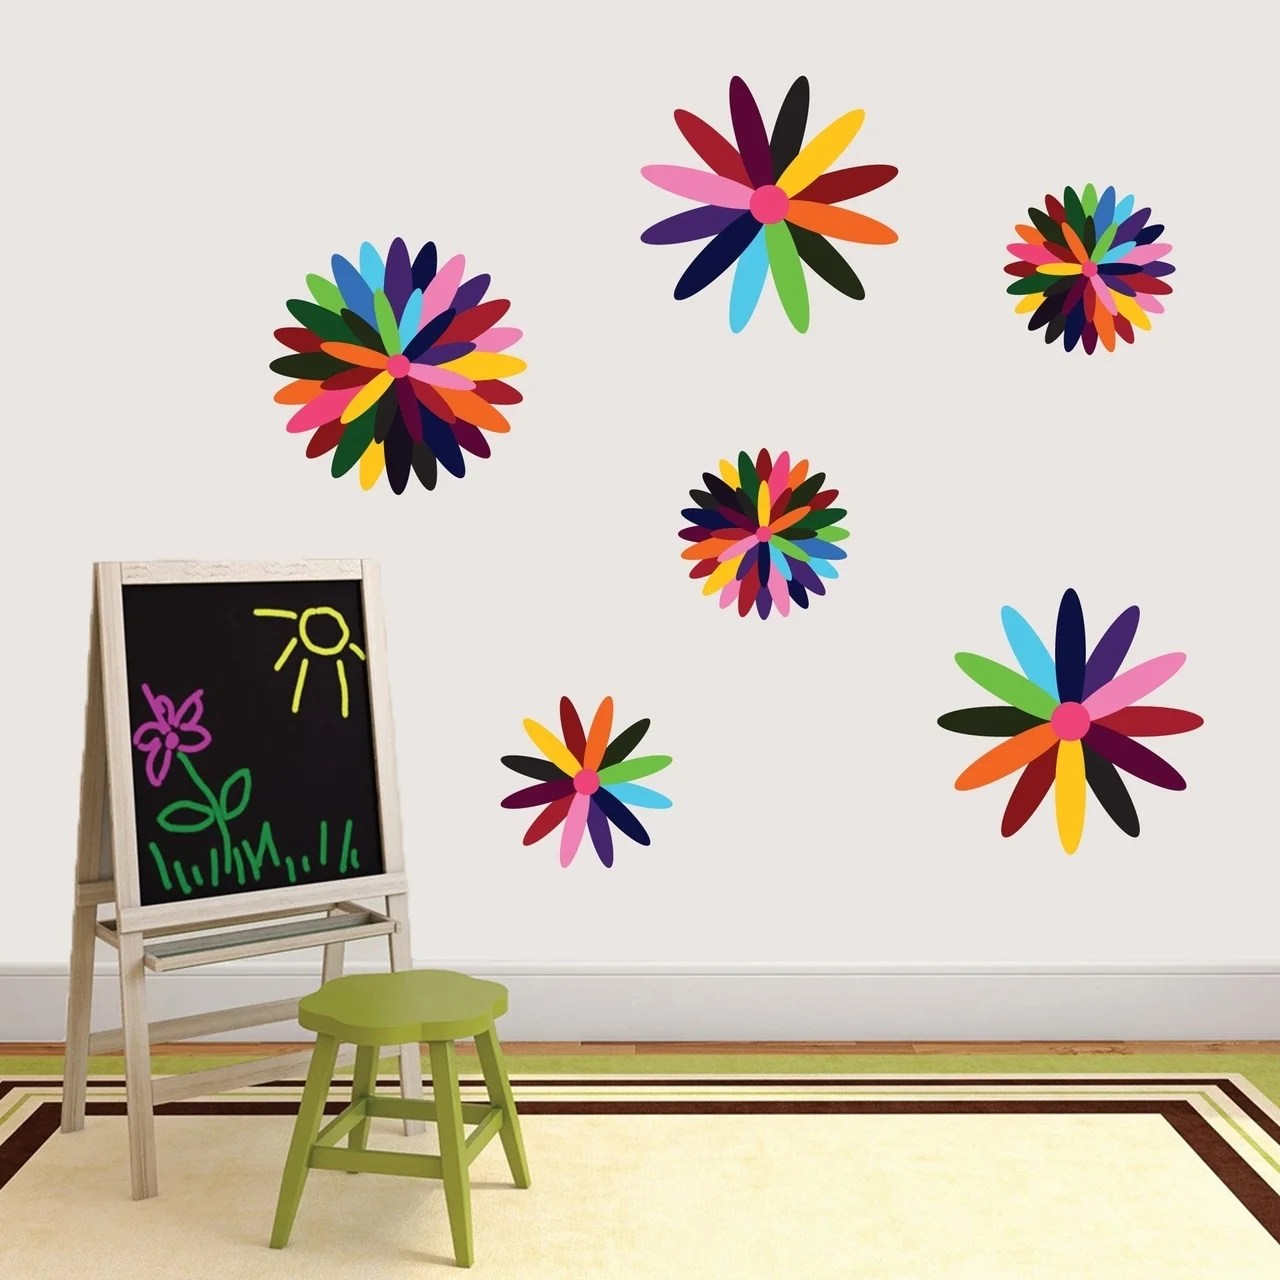 Rainbow Flowers Printed Wall Decal Pack